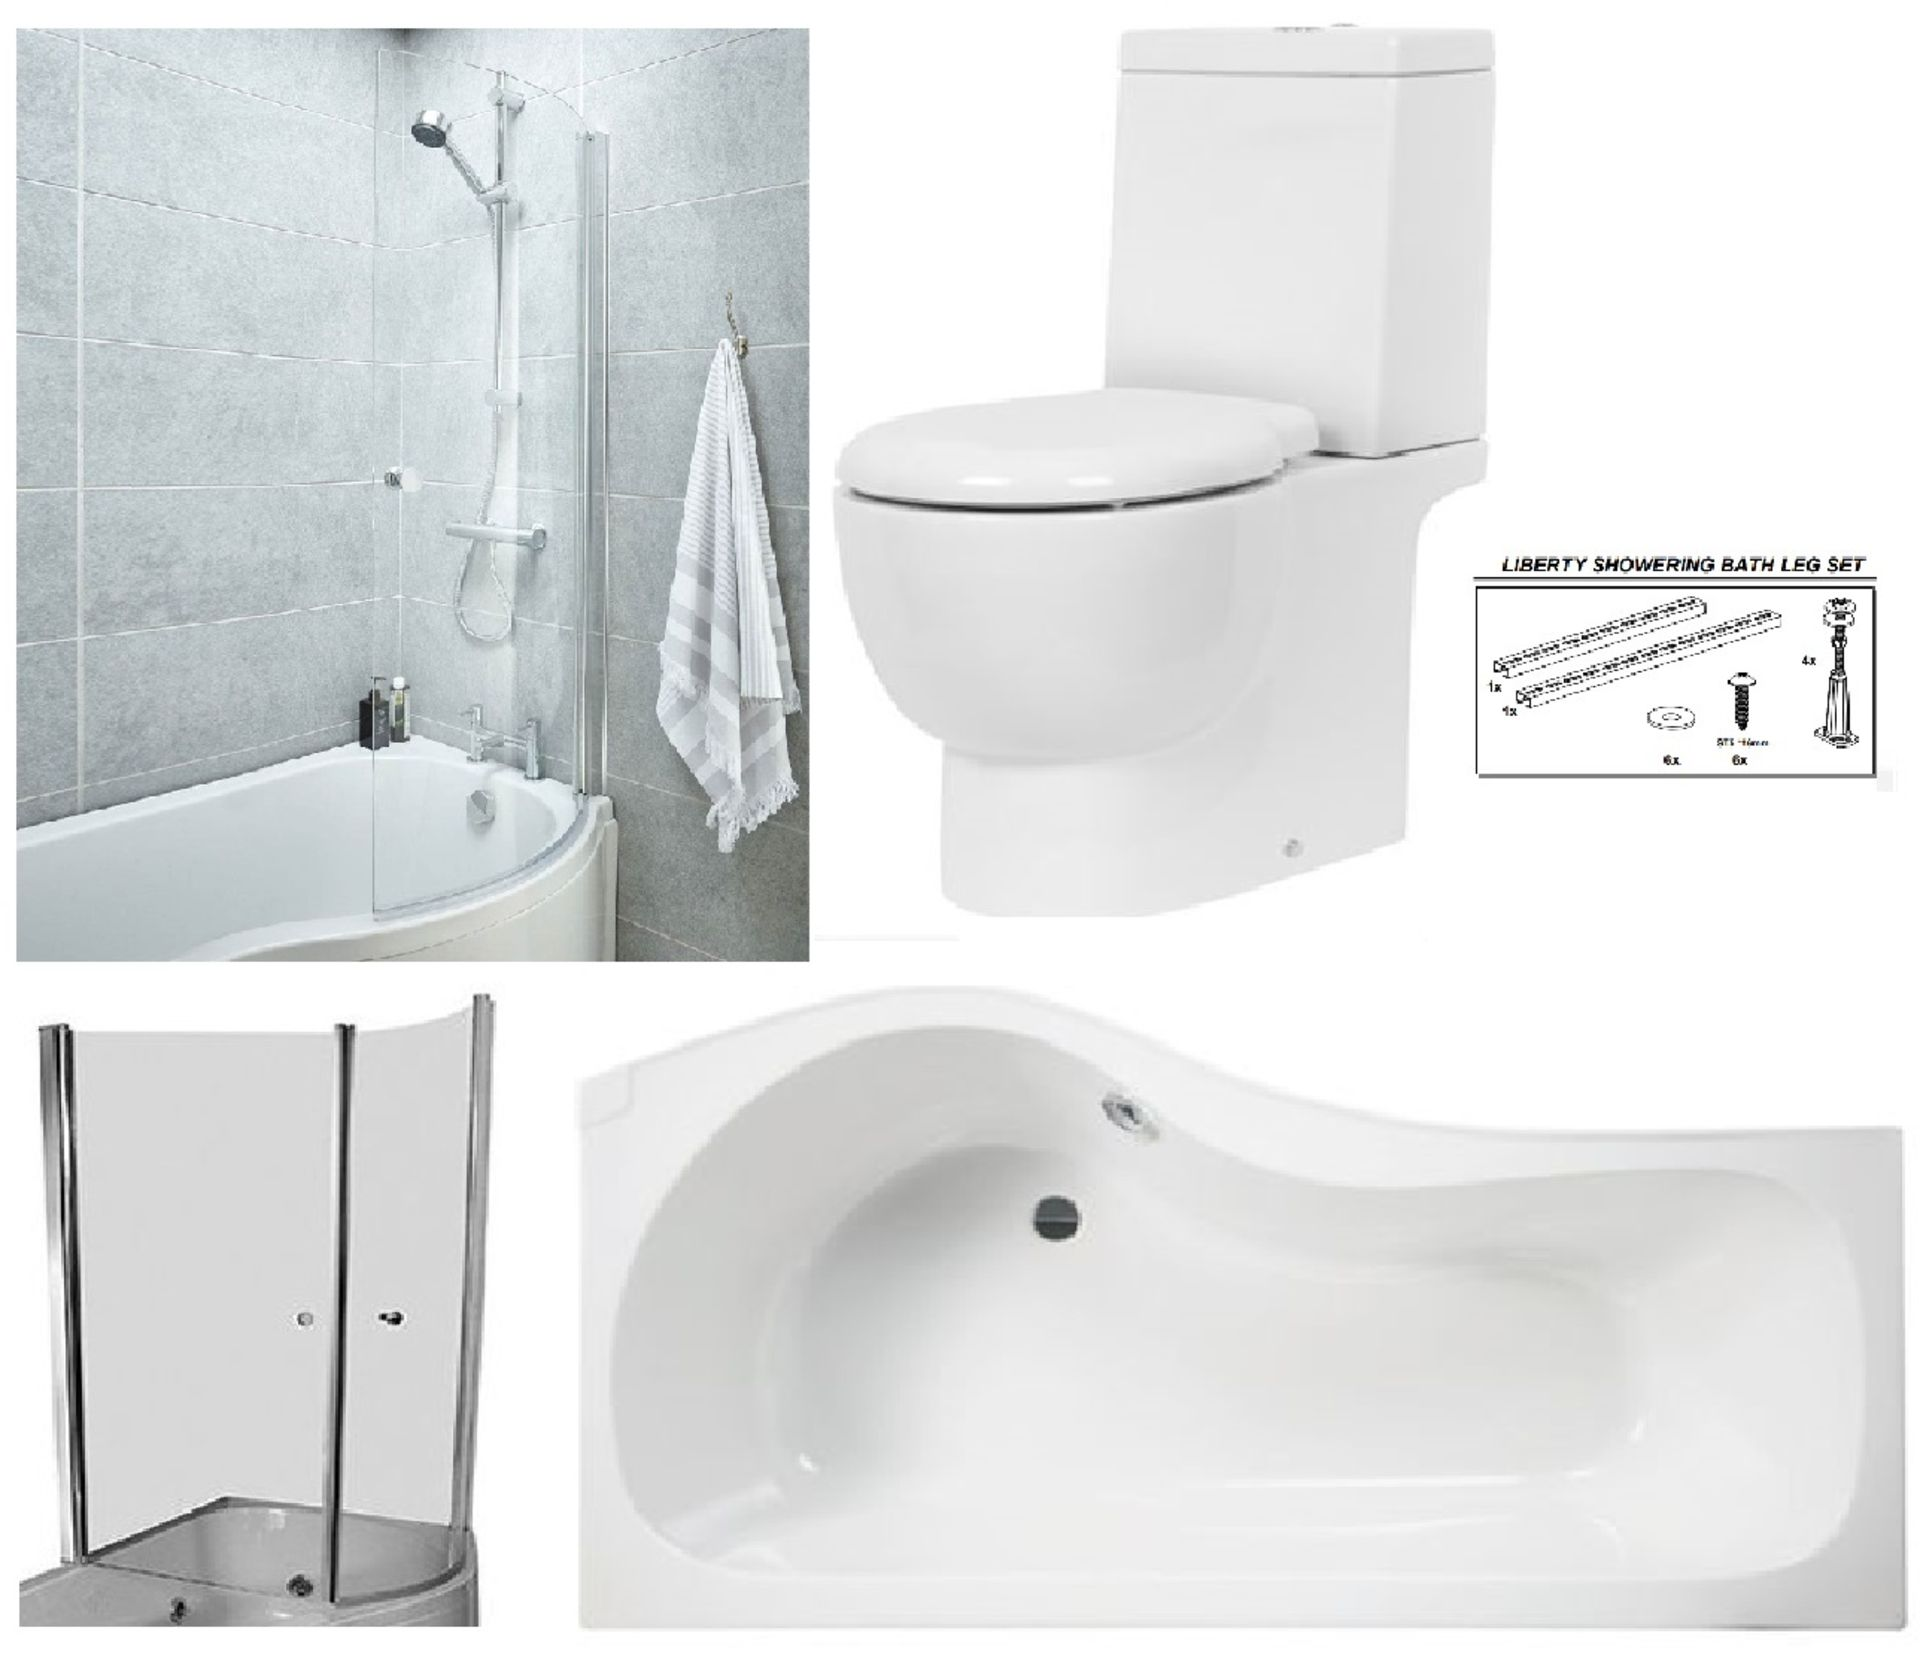 Lot 4 - Bathstore Liberty' RIGHT HANDED 1500mm re-enforced 'P' shower bath with curved pivot front bath